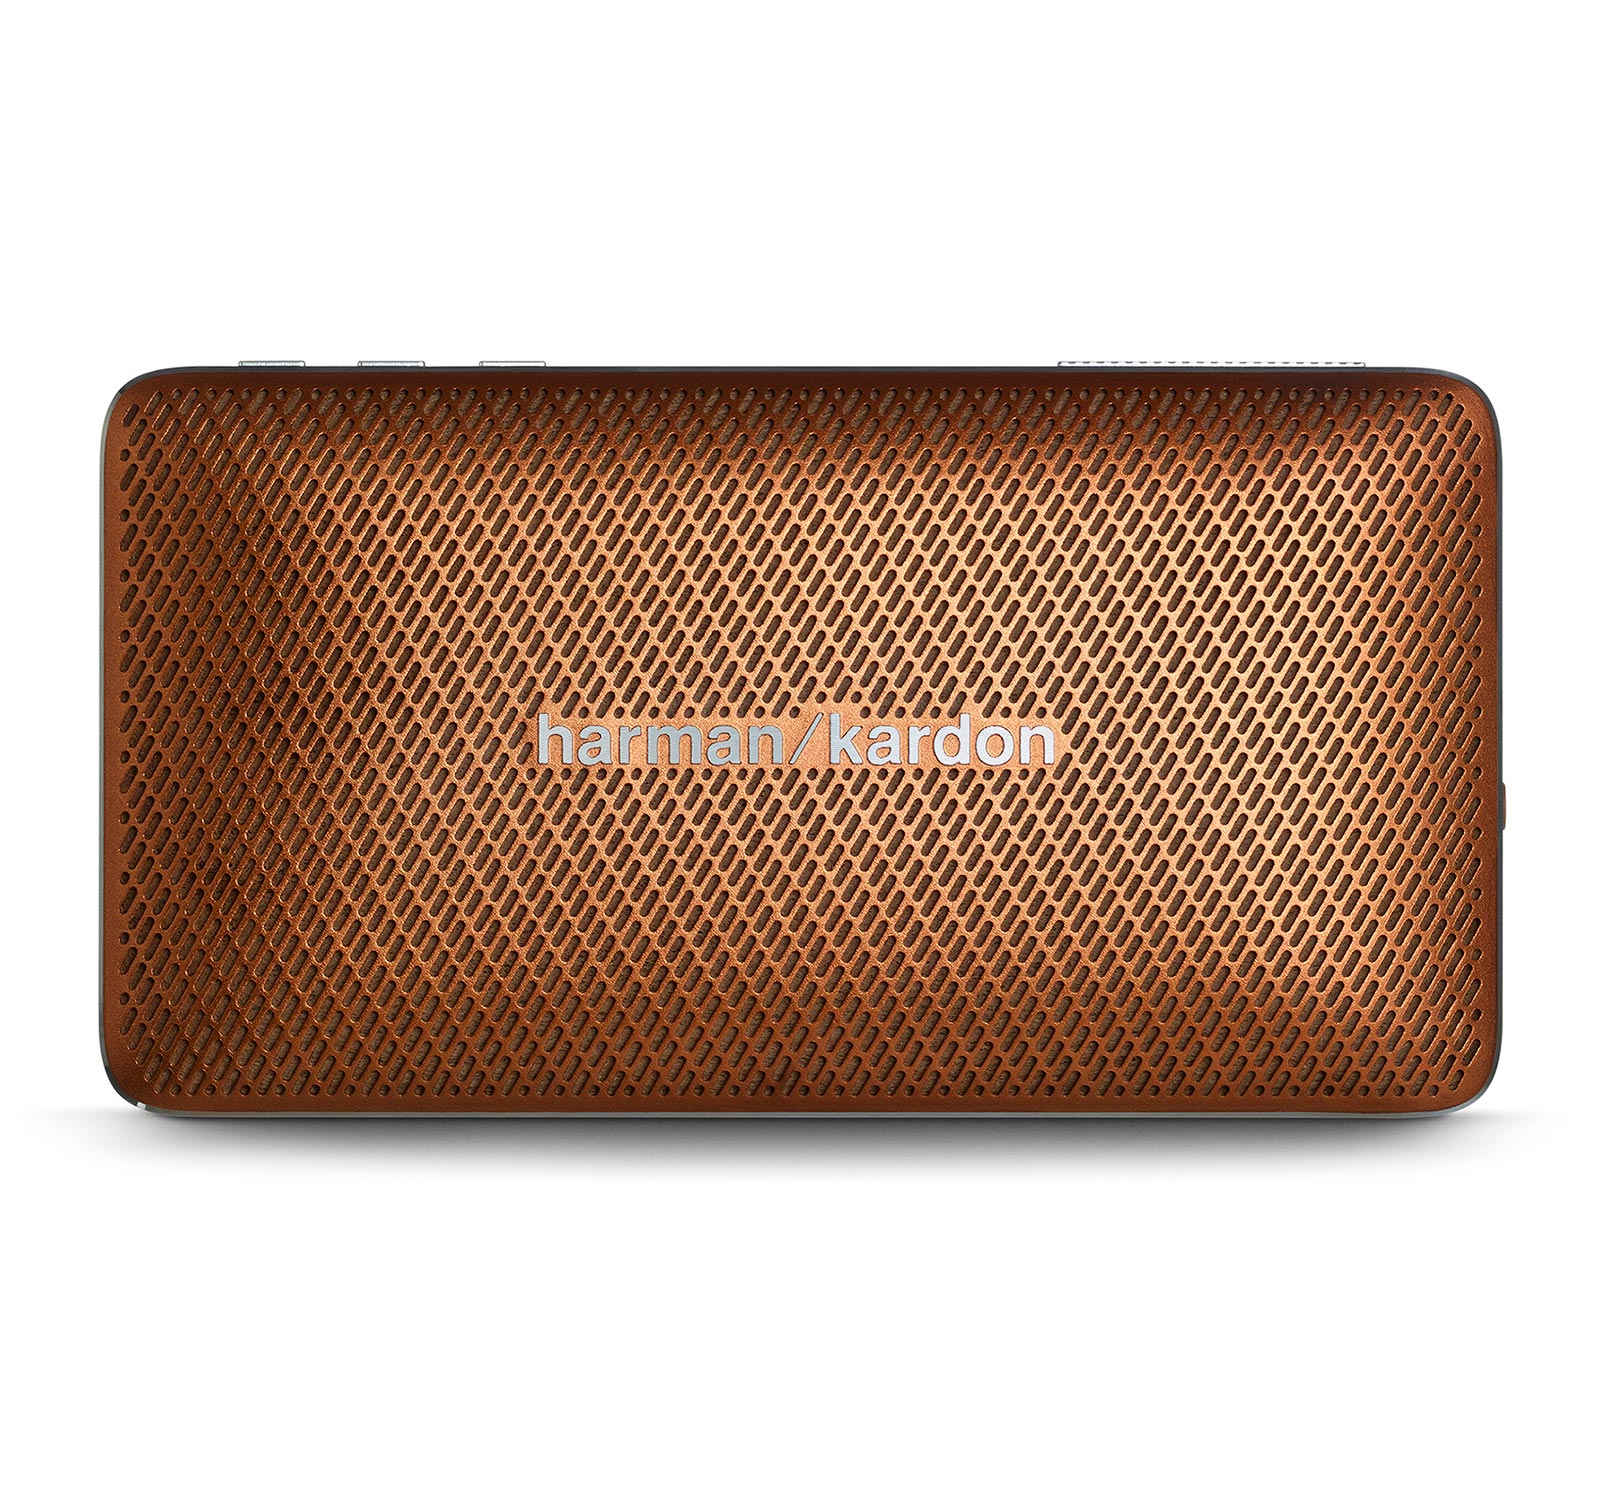 Harman Kardon Esquire Mini Brown Open Box Bluetooth Speaker by Harman Kardon